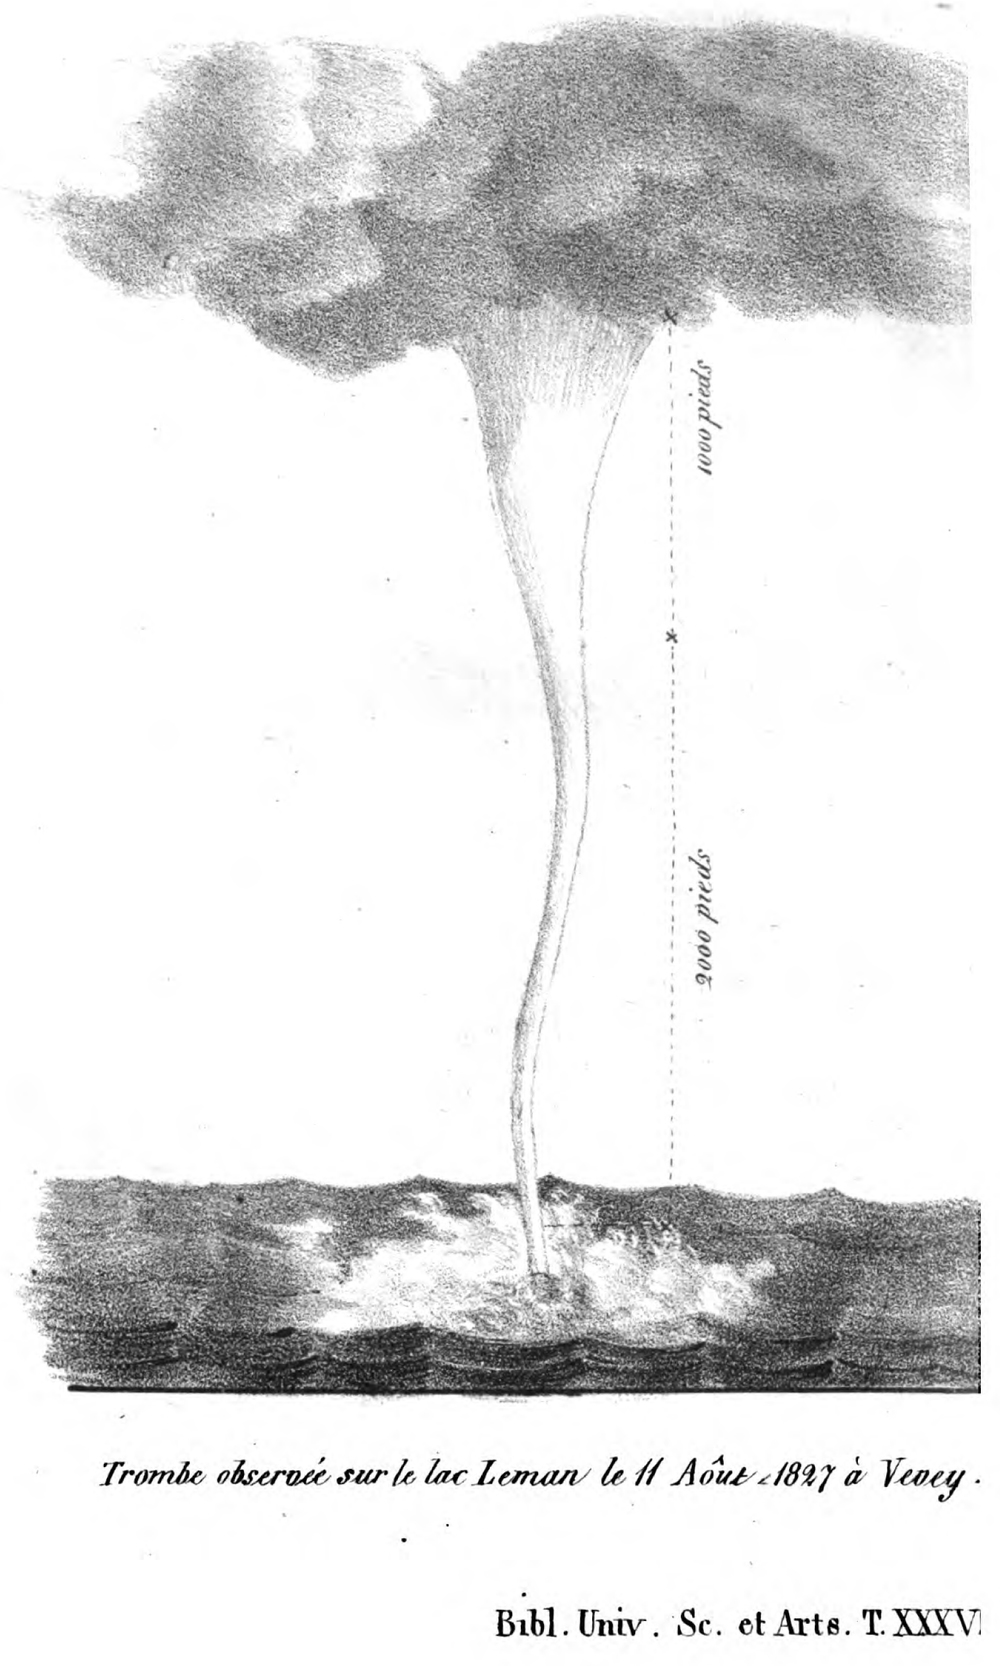 "Waterspout observed over Lake Geneva on 11 August 1827 from Vevey by Prof. Mercanton at 18:45. ""From the middle of the cloud, little to the right of St. Gingolph, a portion of this cloud took suddenly a vertically direction: the form was that of a revers cone, and the colour was red-orange due to the reflection of the sunset , this appearance attracted all eyes immediately."" (Mercanton 1827, 142–143)  source: Mercanton, M., 1827: Description d'une trombe observee sur le Lac Leman, le 11 aout 1827: par Mr. le Prof. Mercaton. Bibliotheque Universelle des Sciences, Belles-Letters, et Arts, 36, 142–145. [PDF via Google Books]"